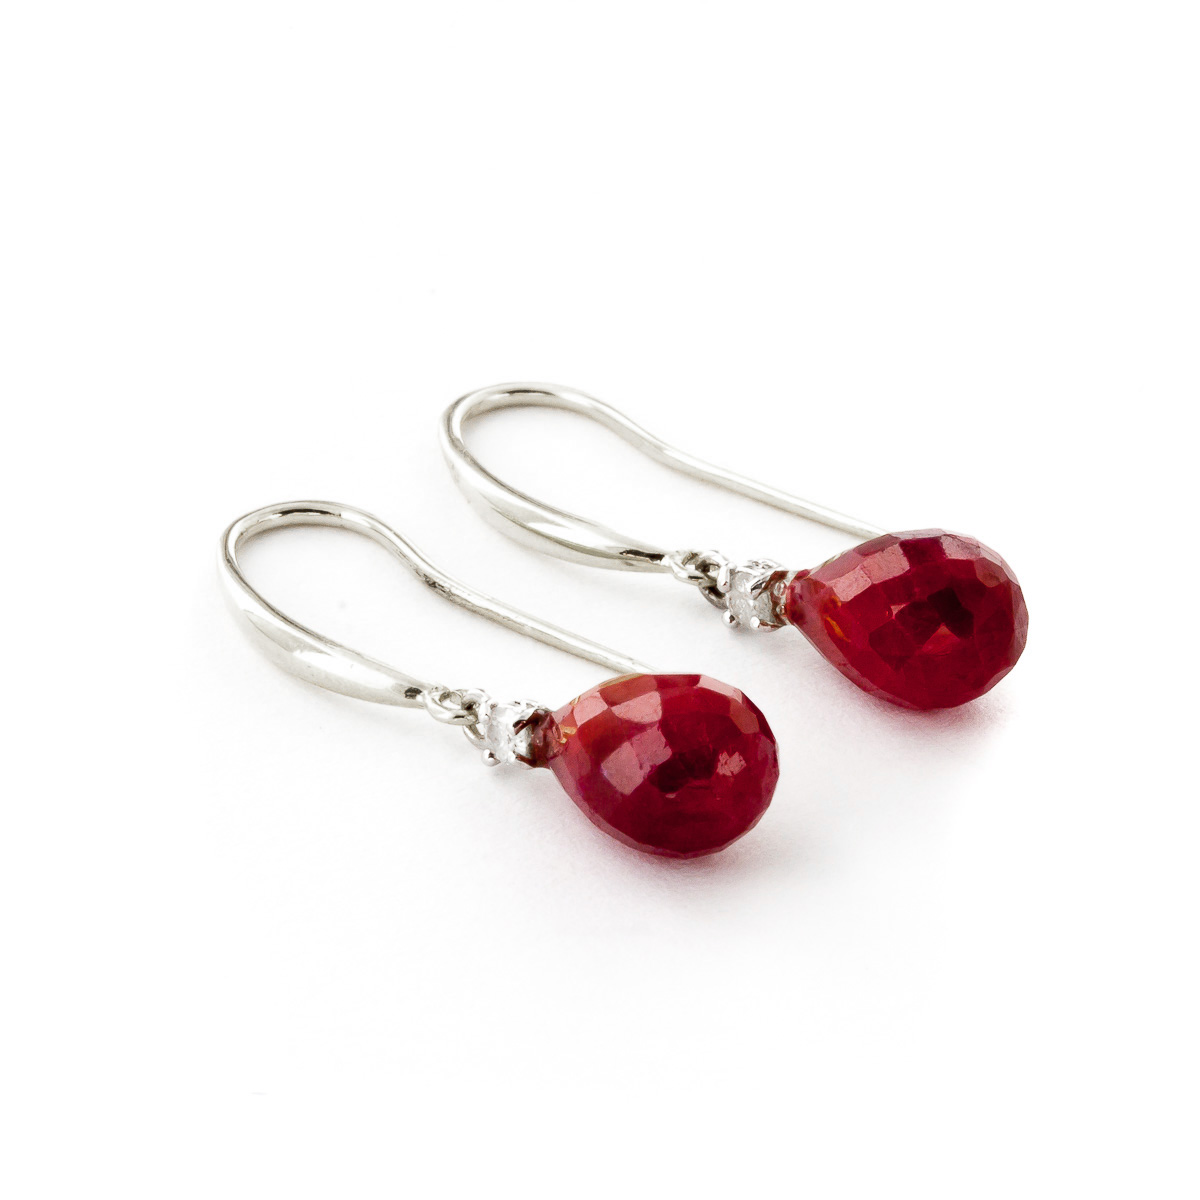 Ruby and Diamond Drop Earrings 6.6ctw in 9ct White Gold